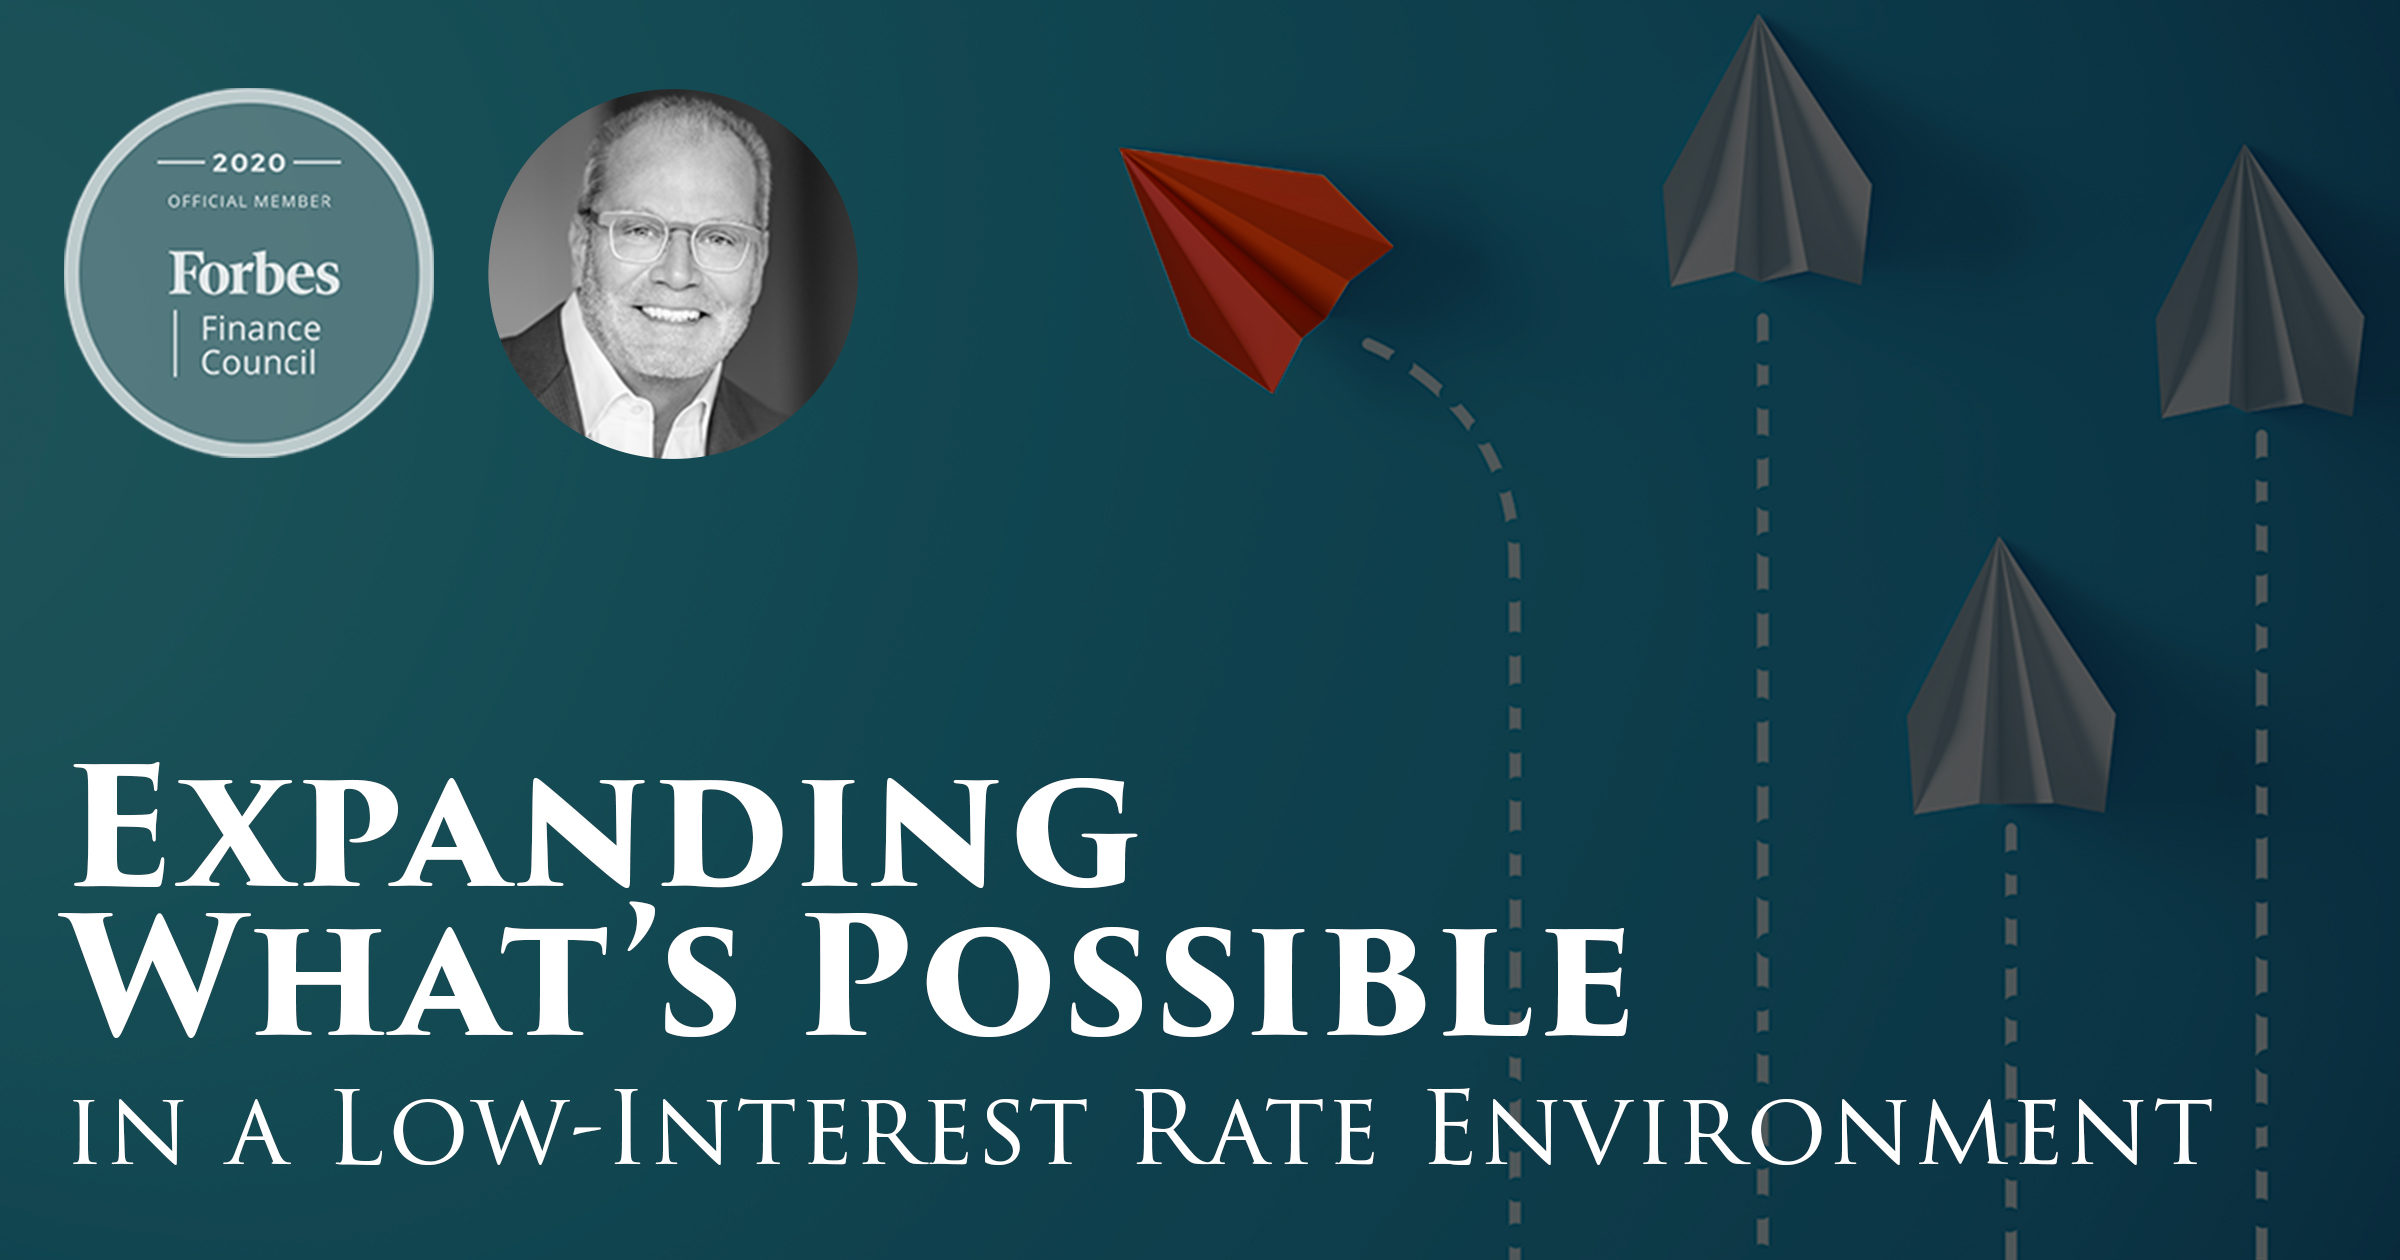 Financed Life Insurance: Expanding Low-Interest Environment Possibilities